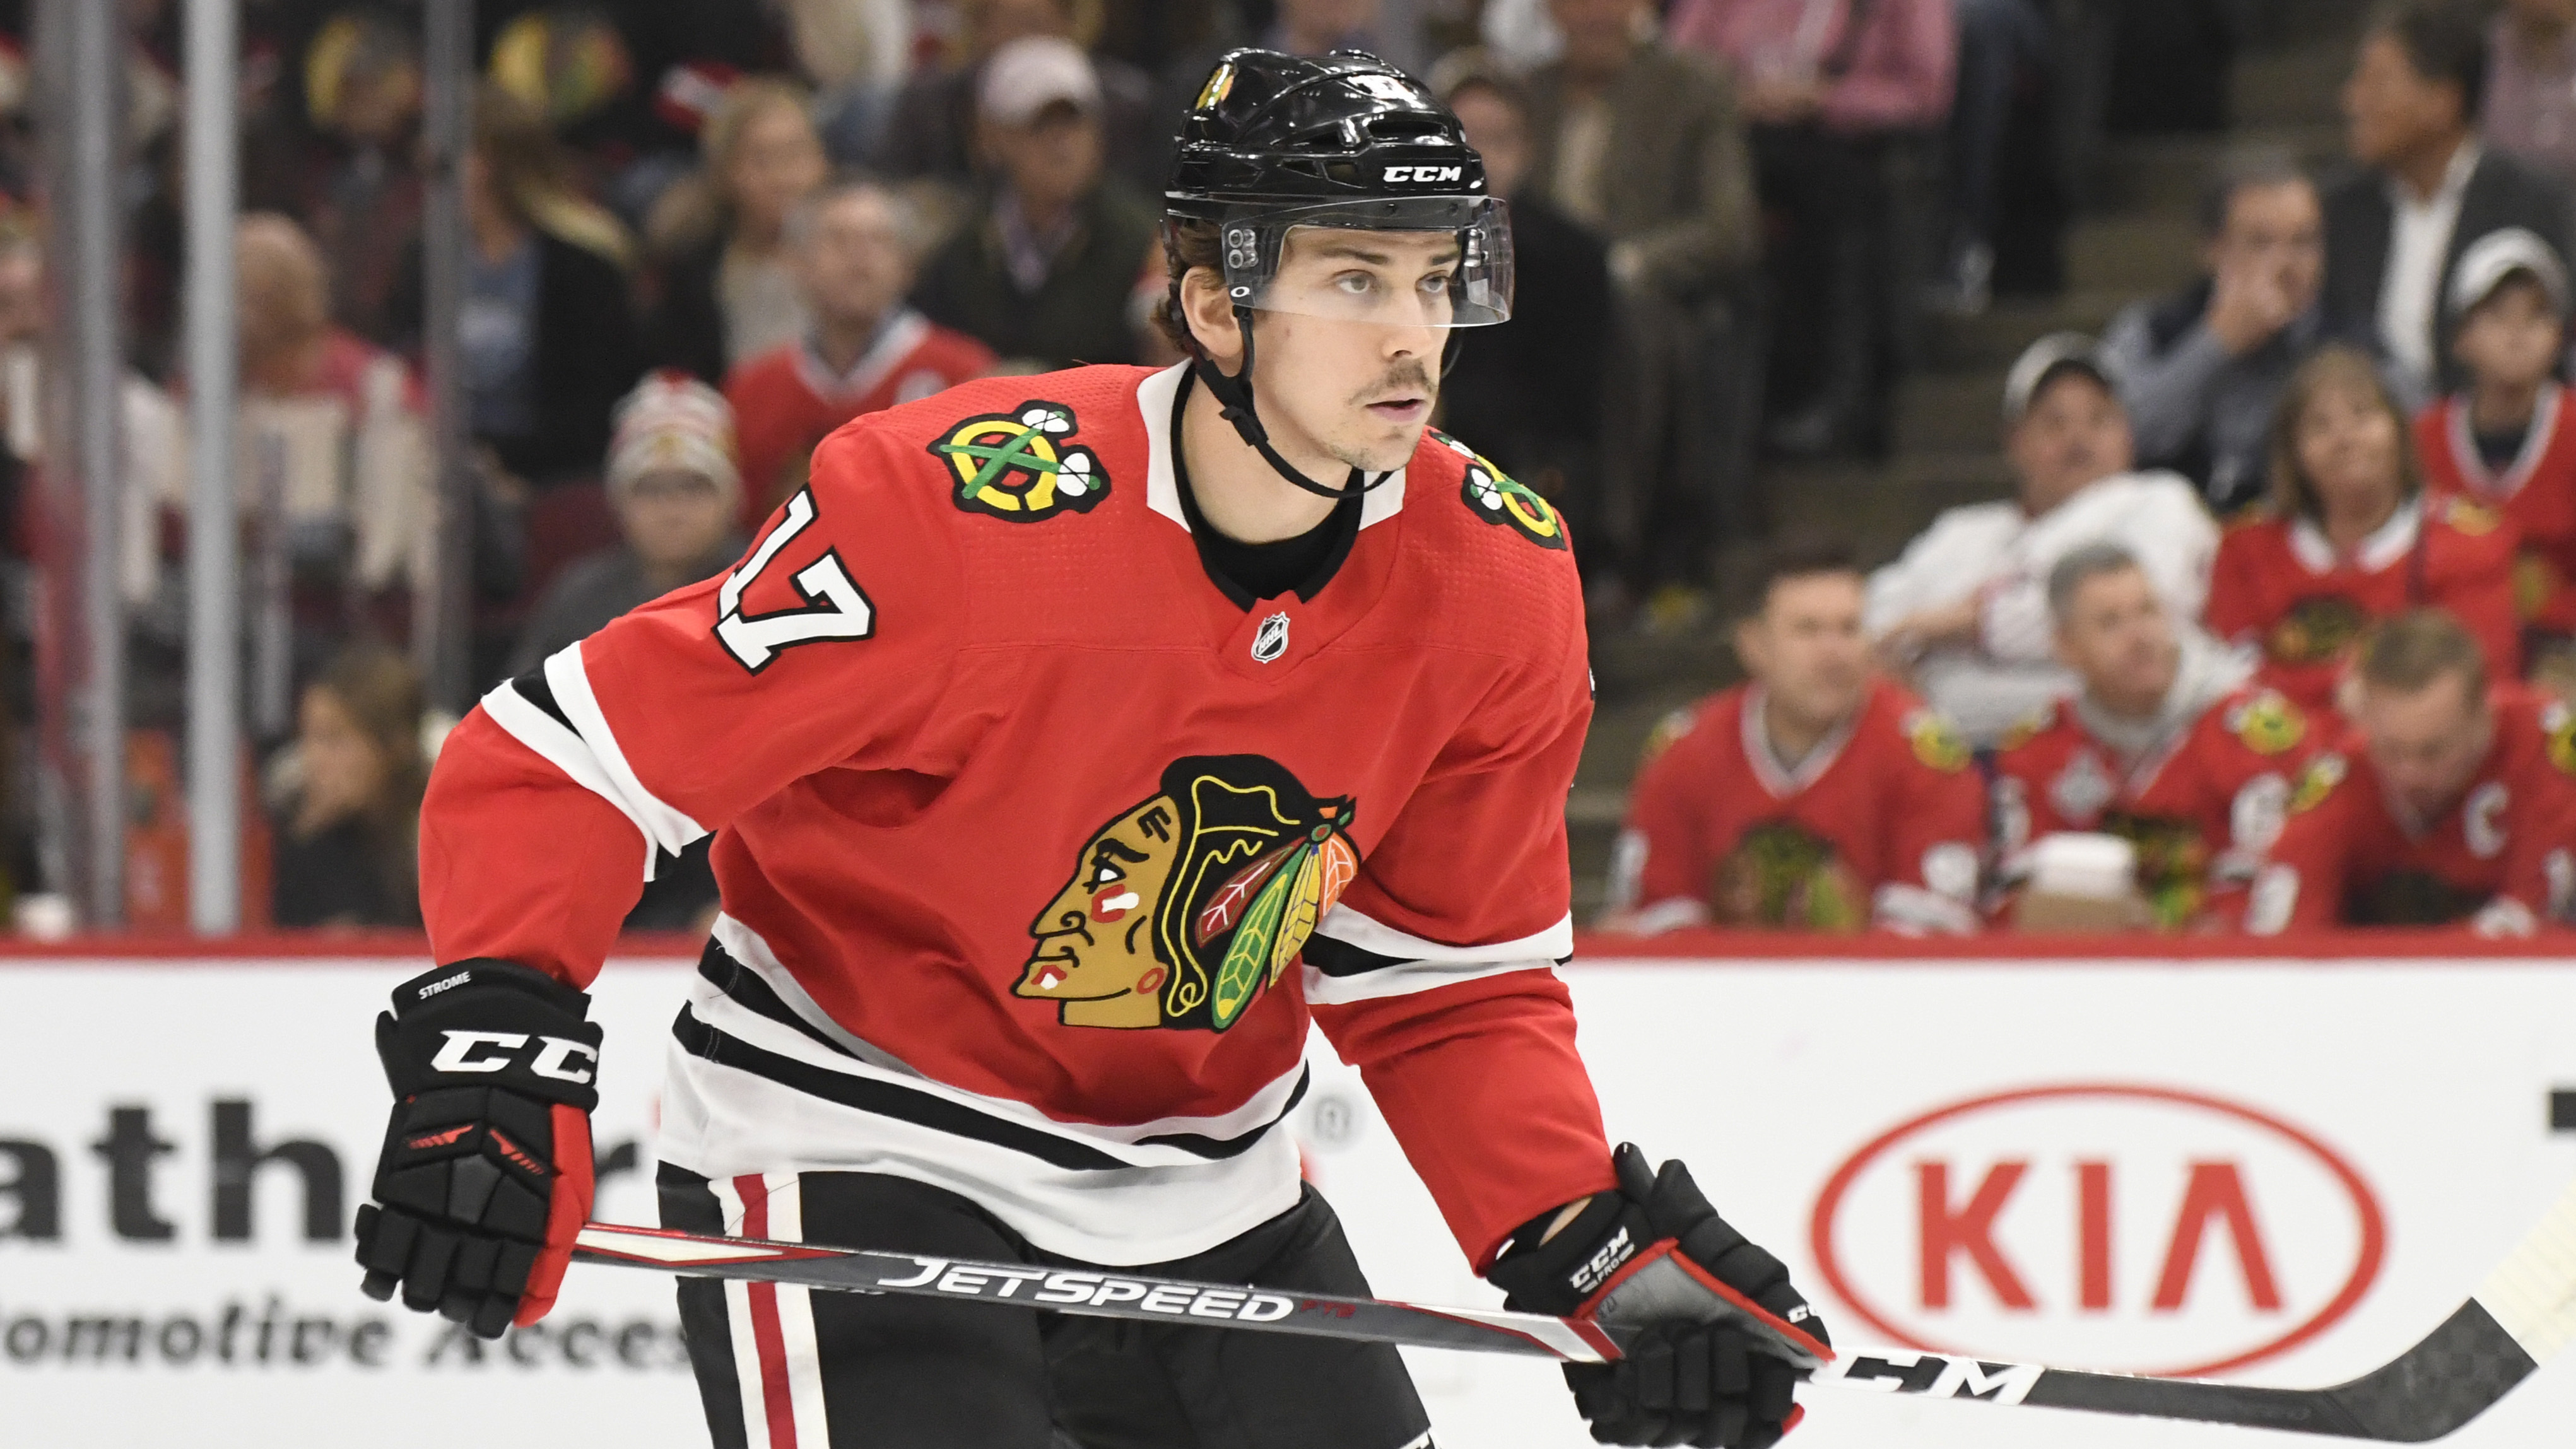 Dylan Strome returned from his concussion Thursday, but the Blackhawks still have two others out with their own concussions.